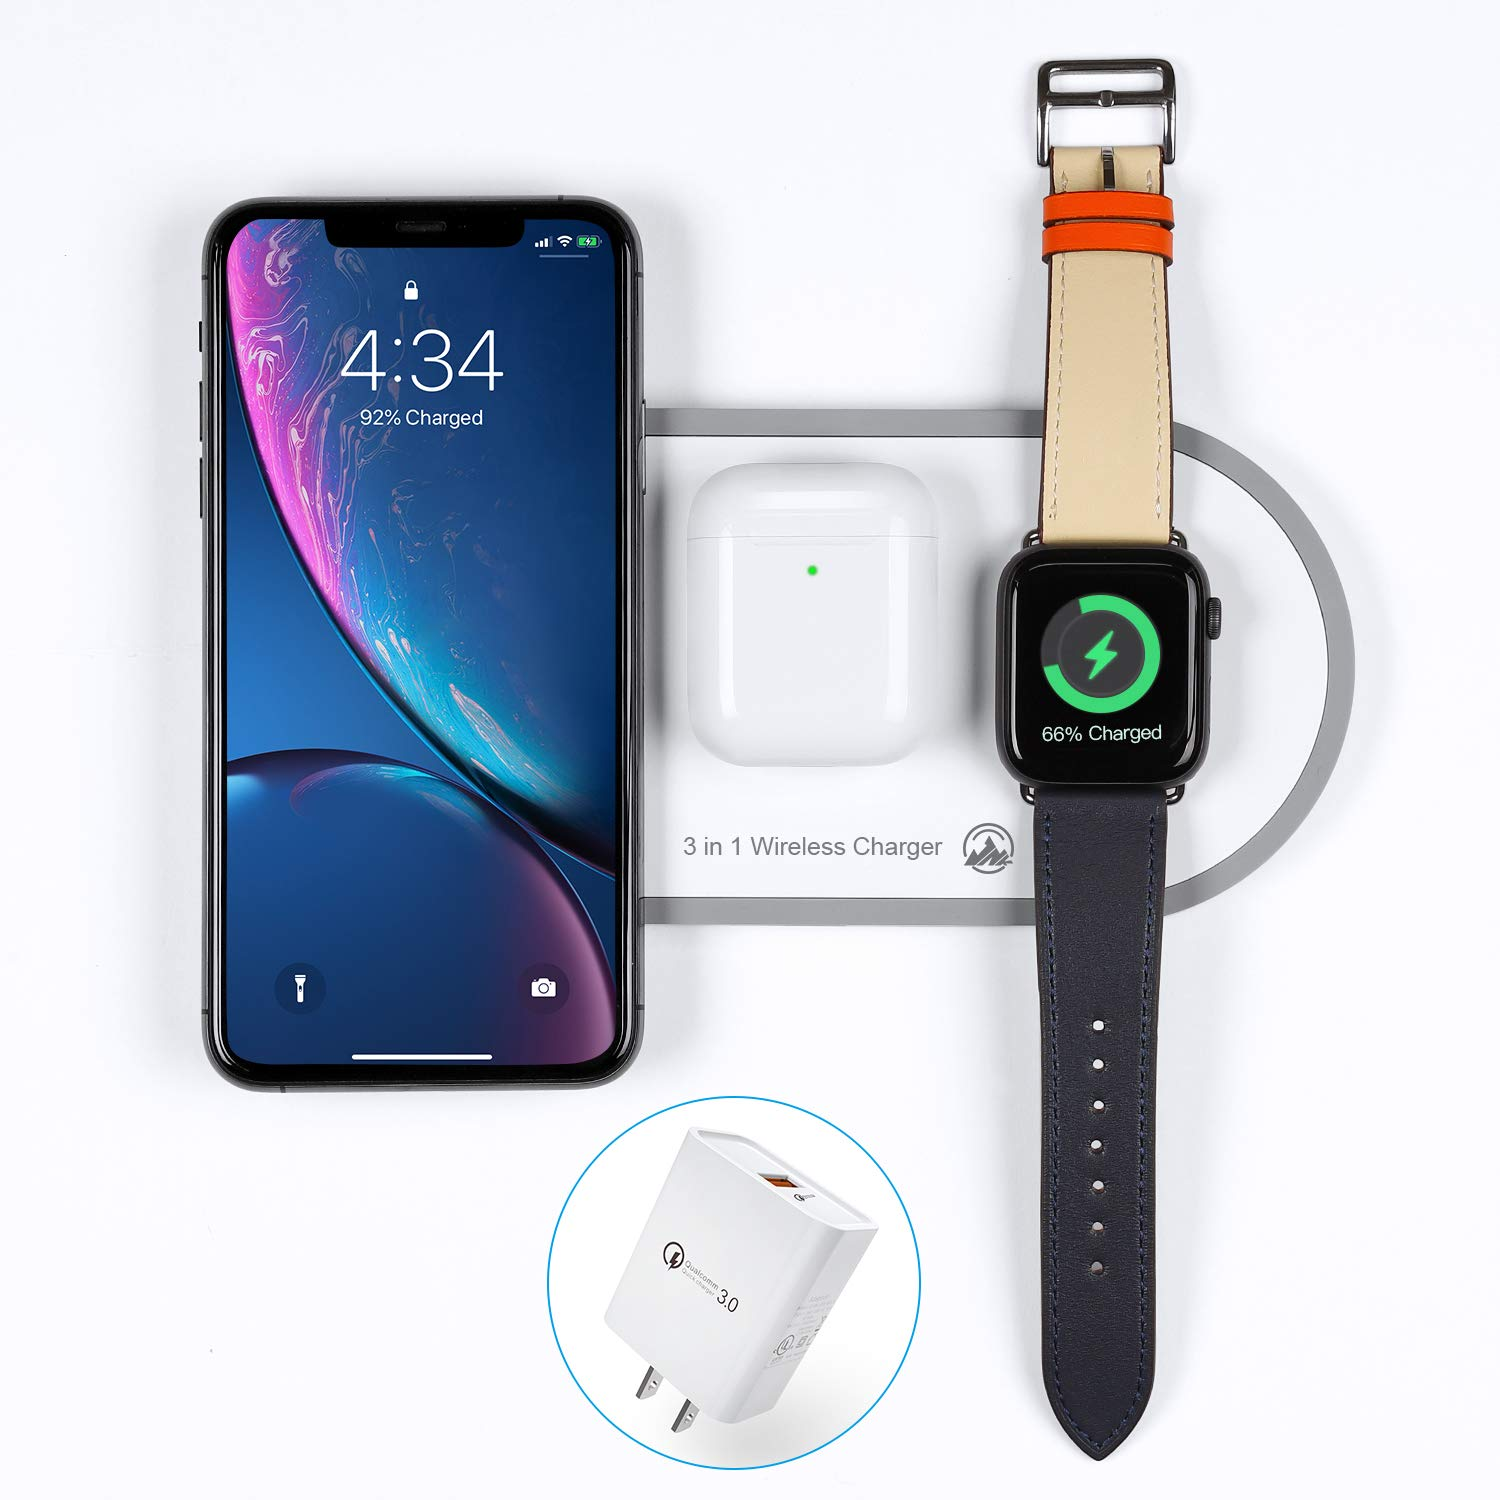 Upgraded Wireless Charger Charging iPhonePro